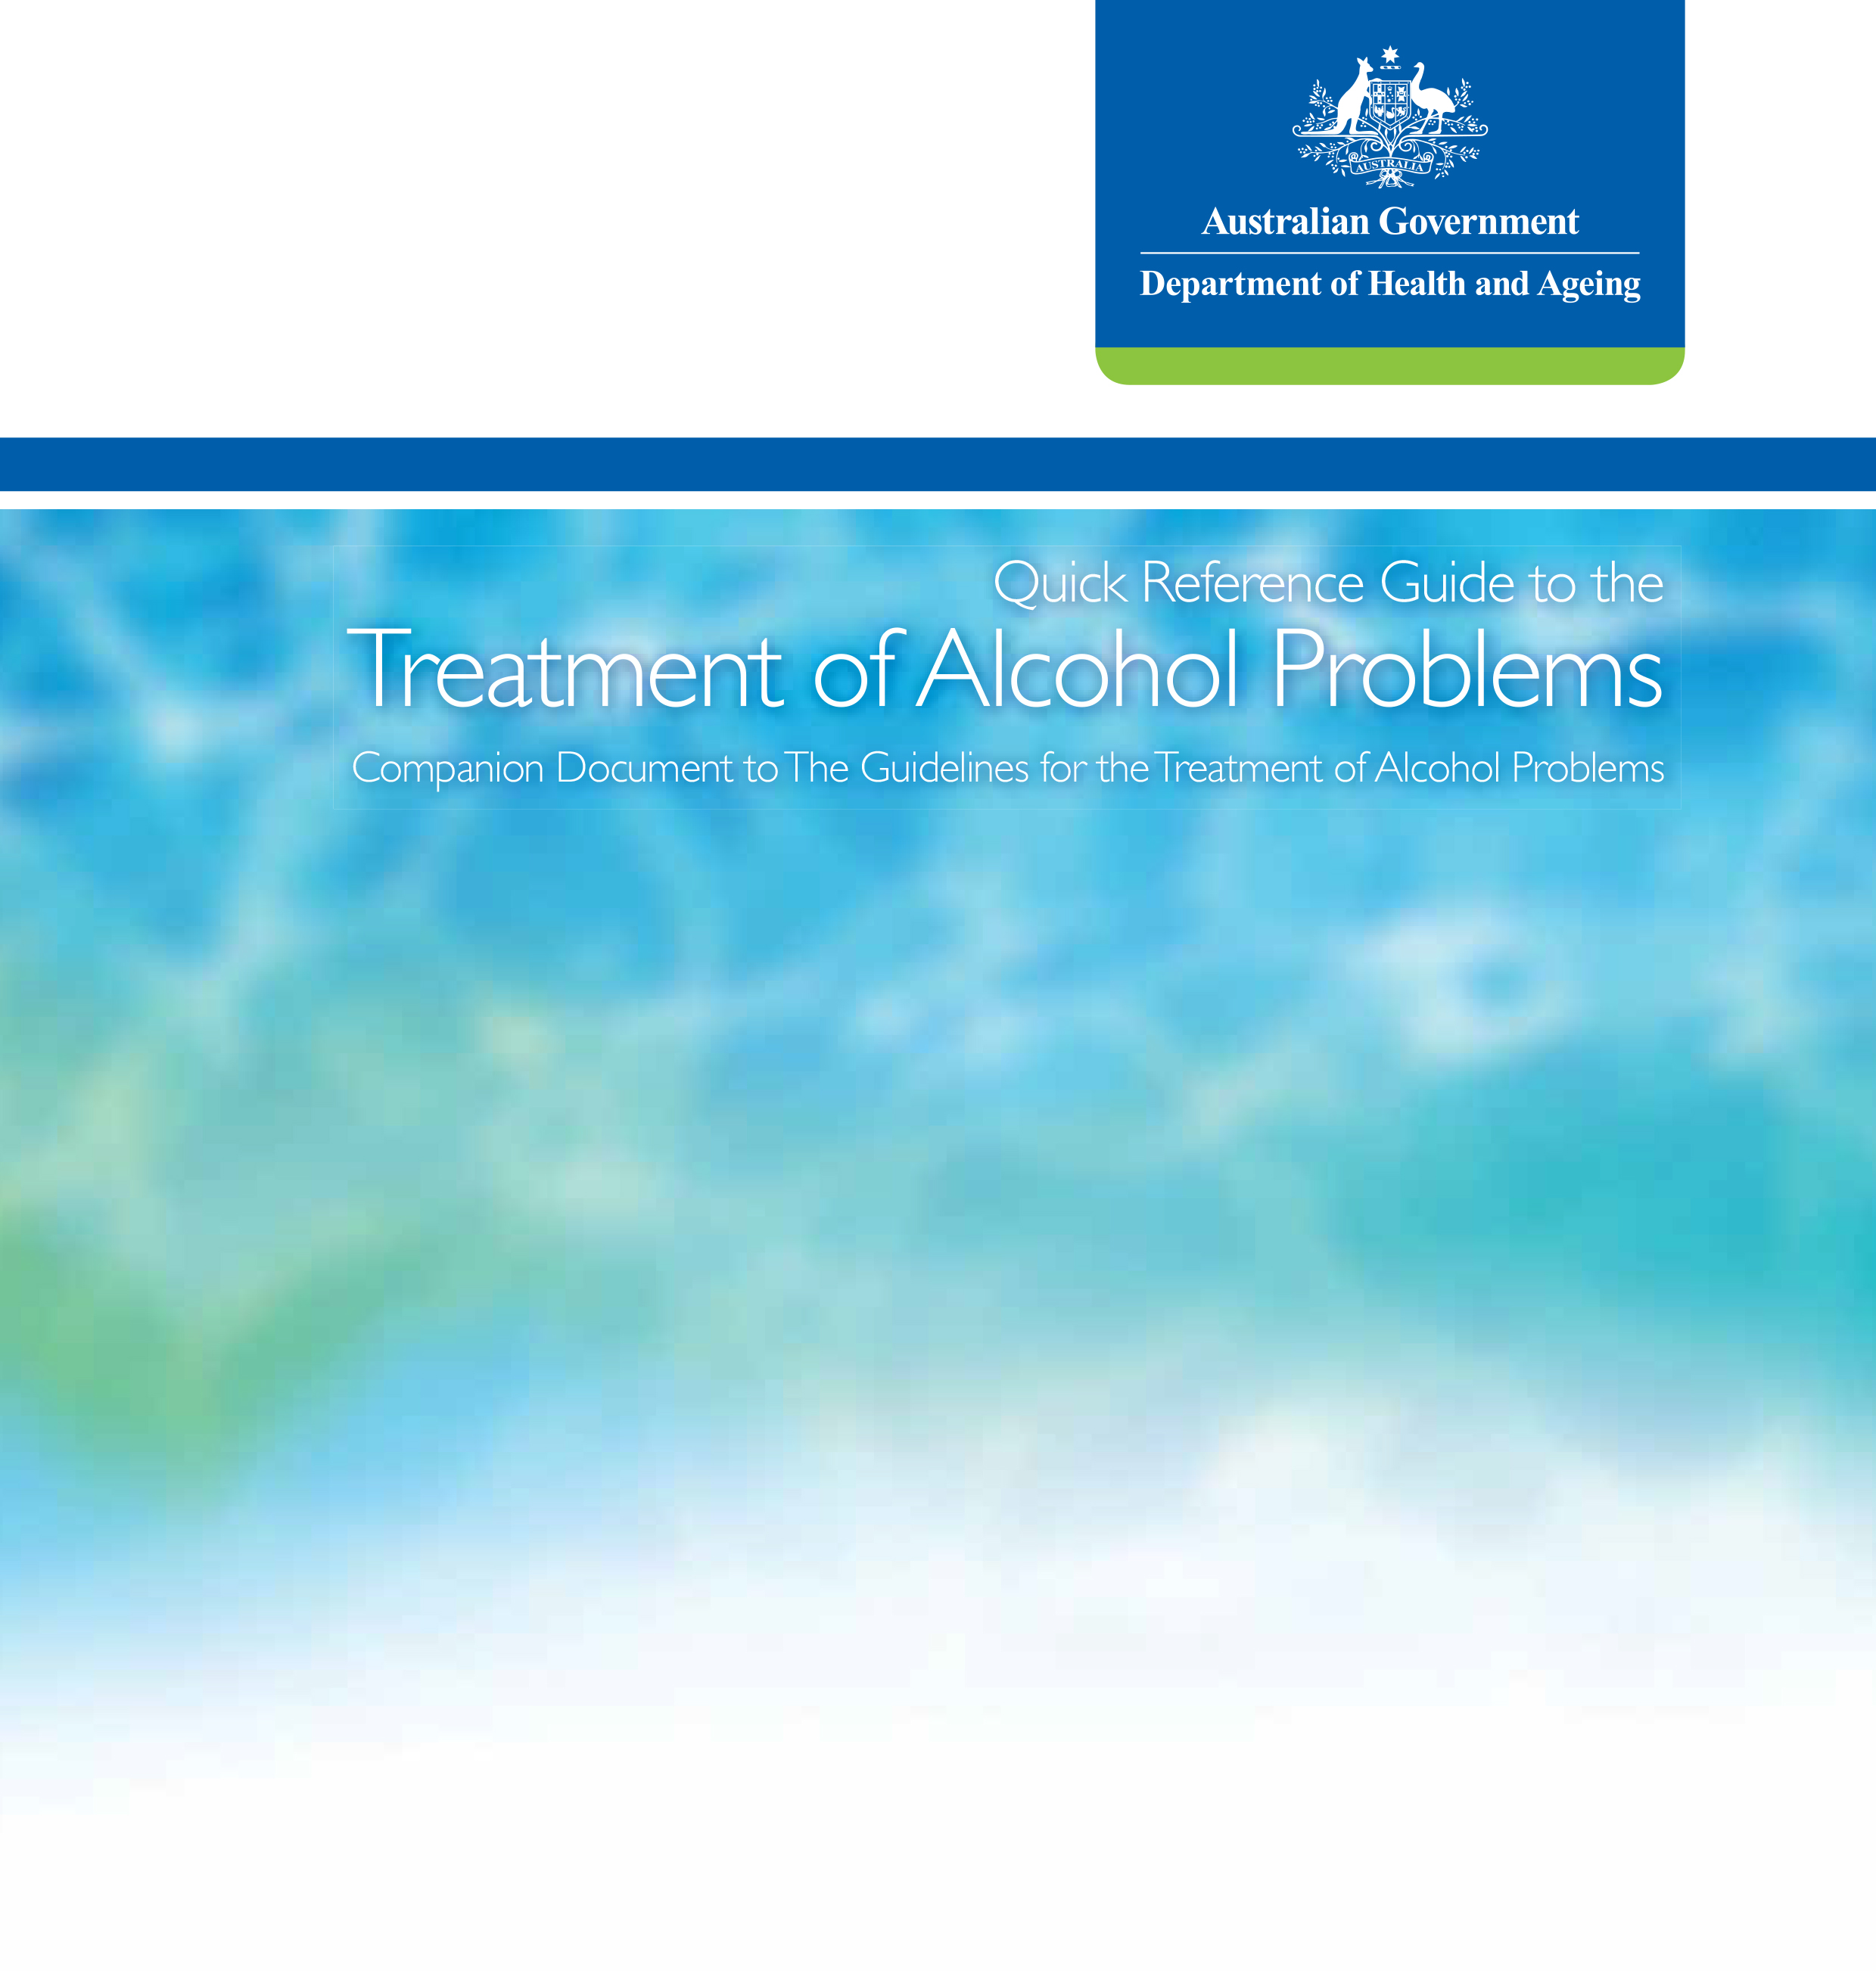 Alcohol: Guidelines for Treatment of Alcohol Problems - Quick Reference Guide - DOHA (2009)